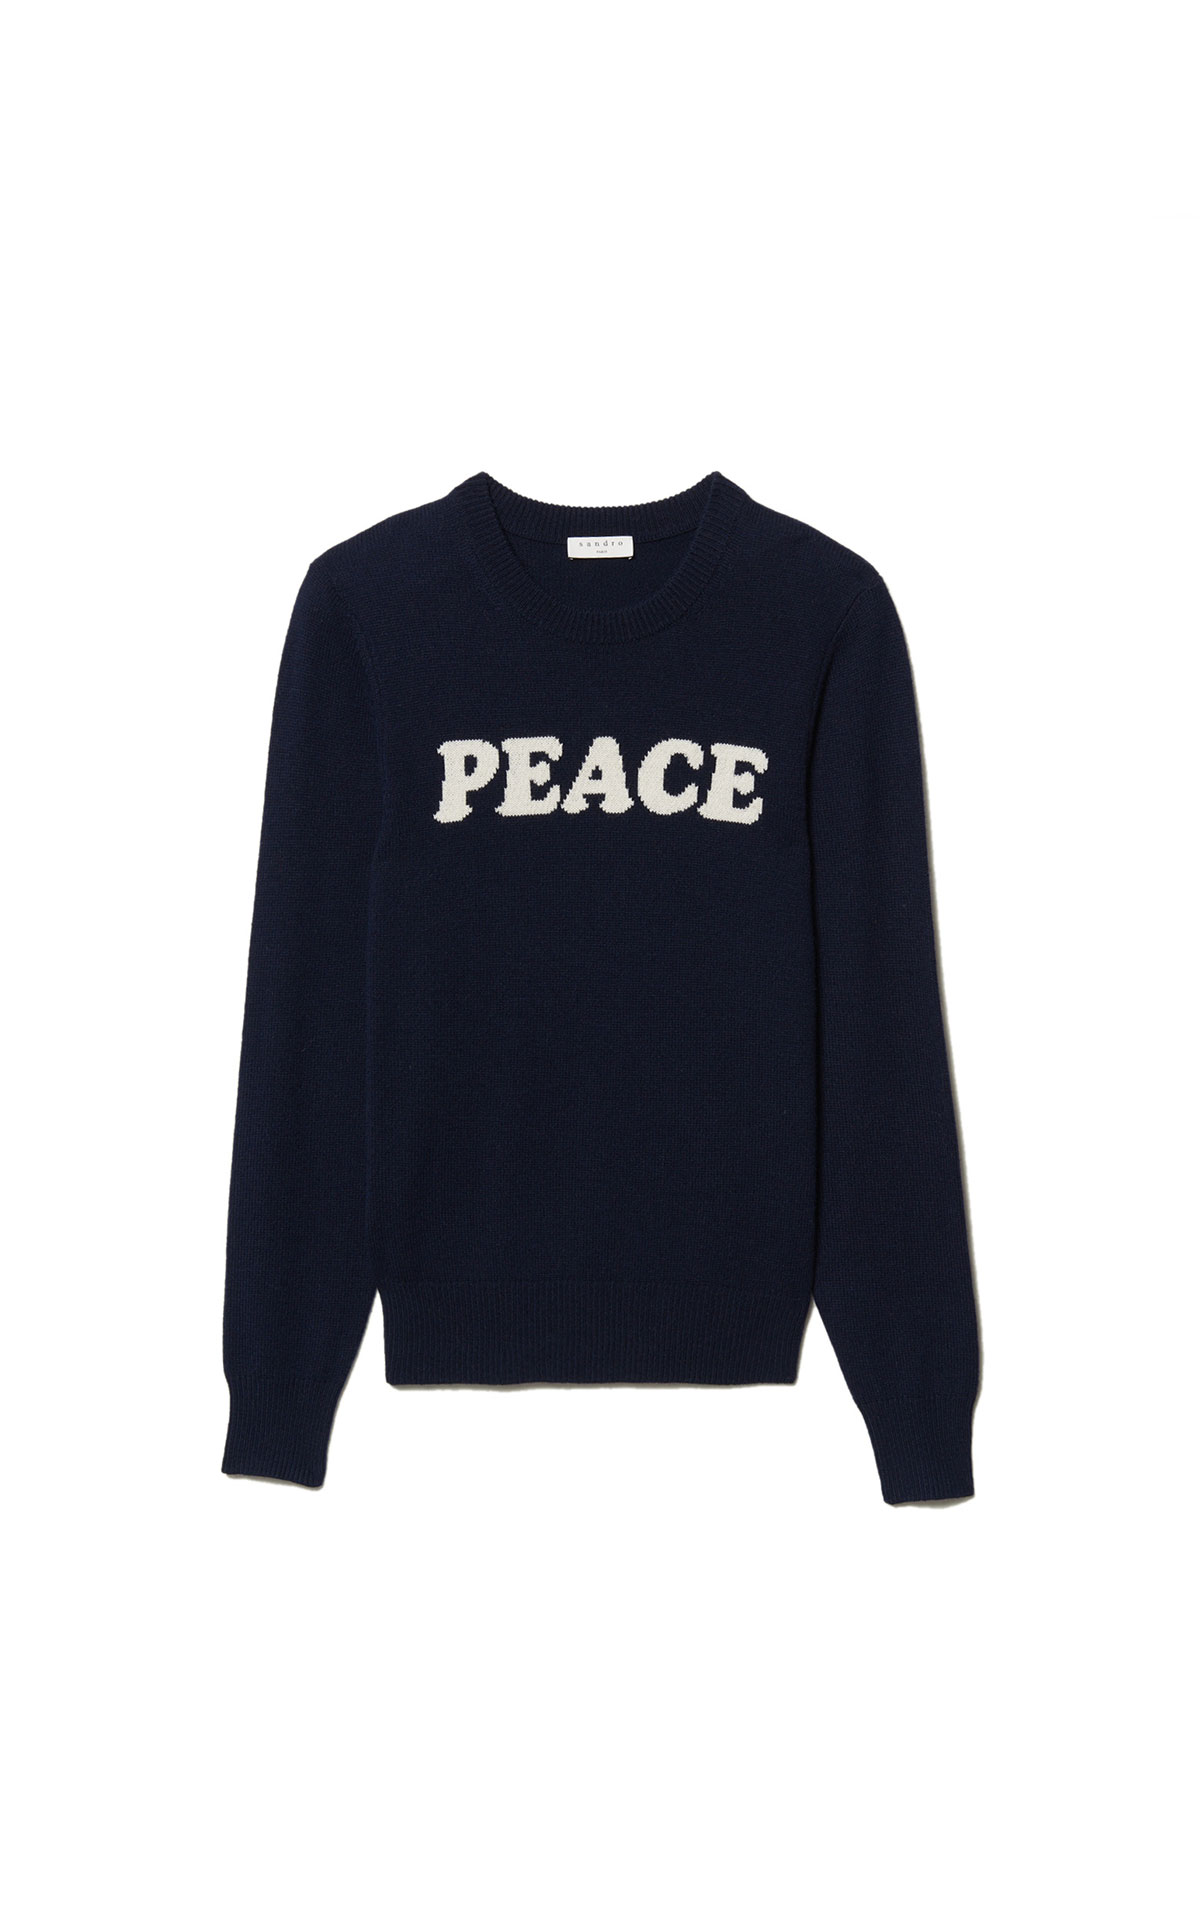 Sandro Men's sweatshirt at The Bicester Village Shopping Collection